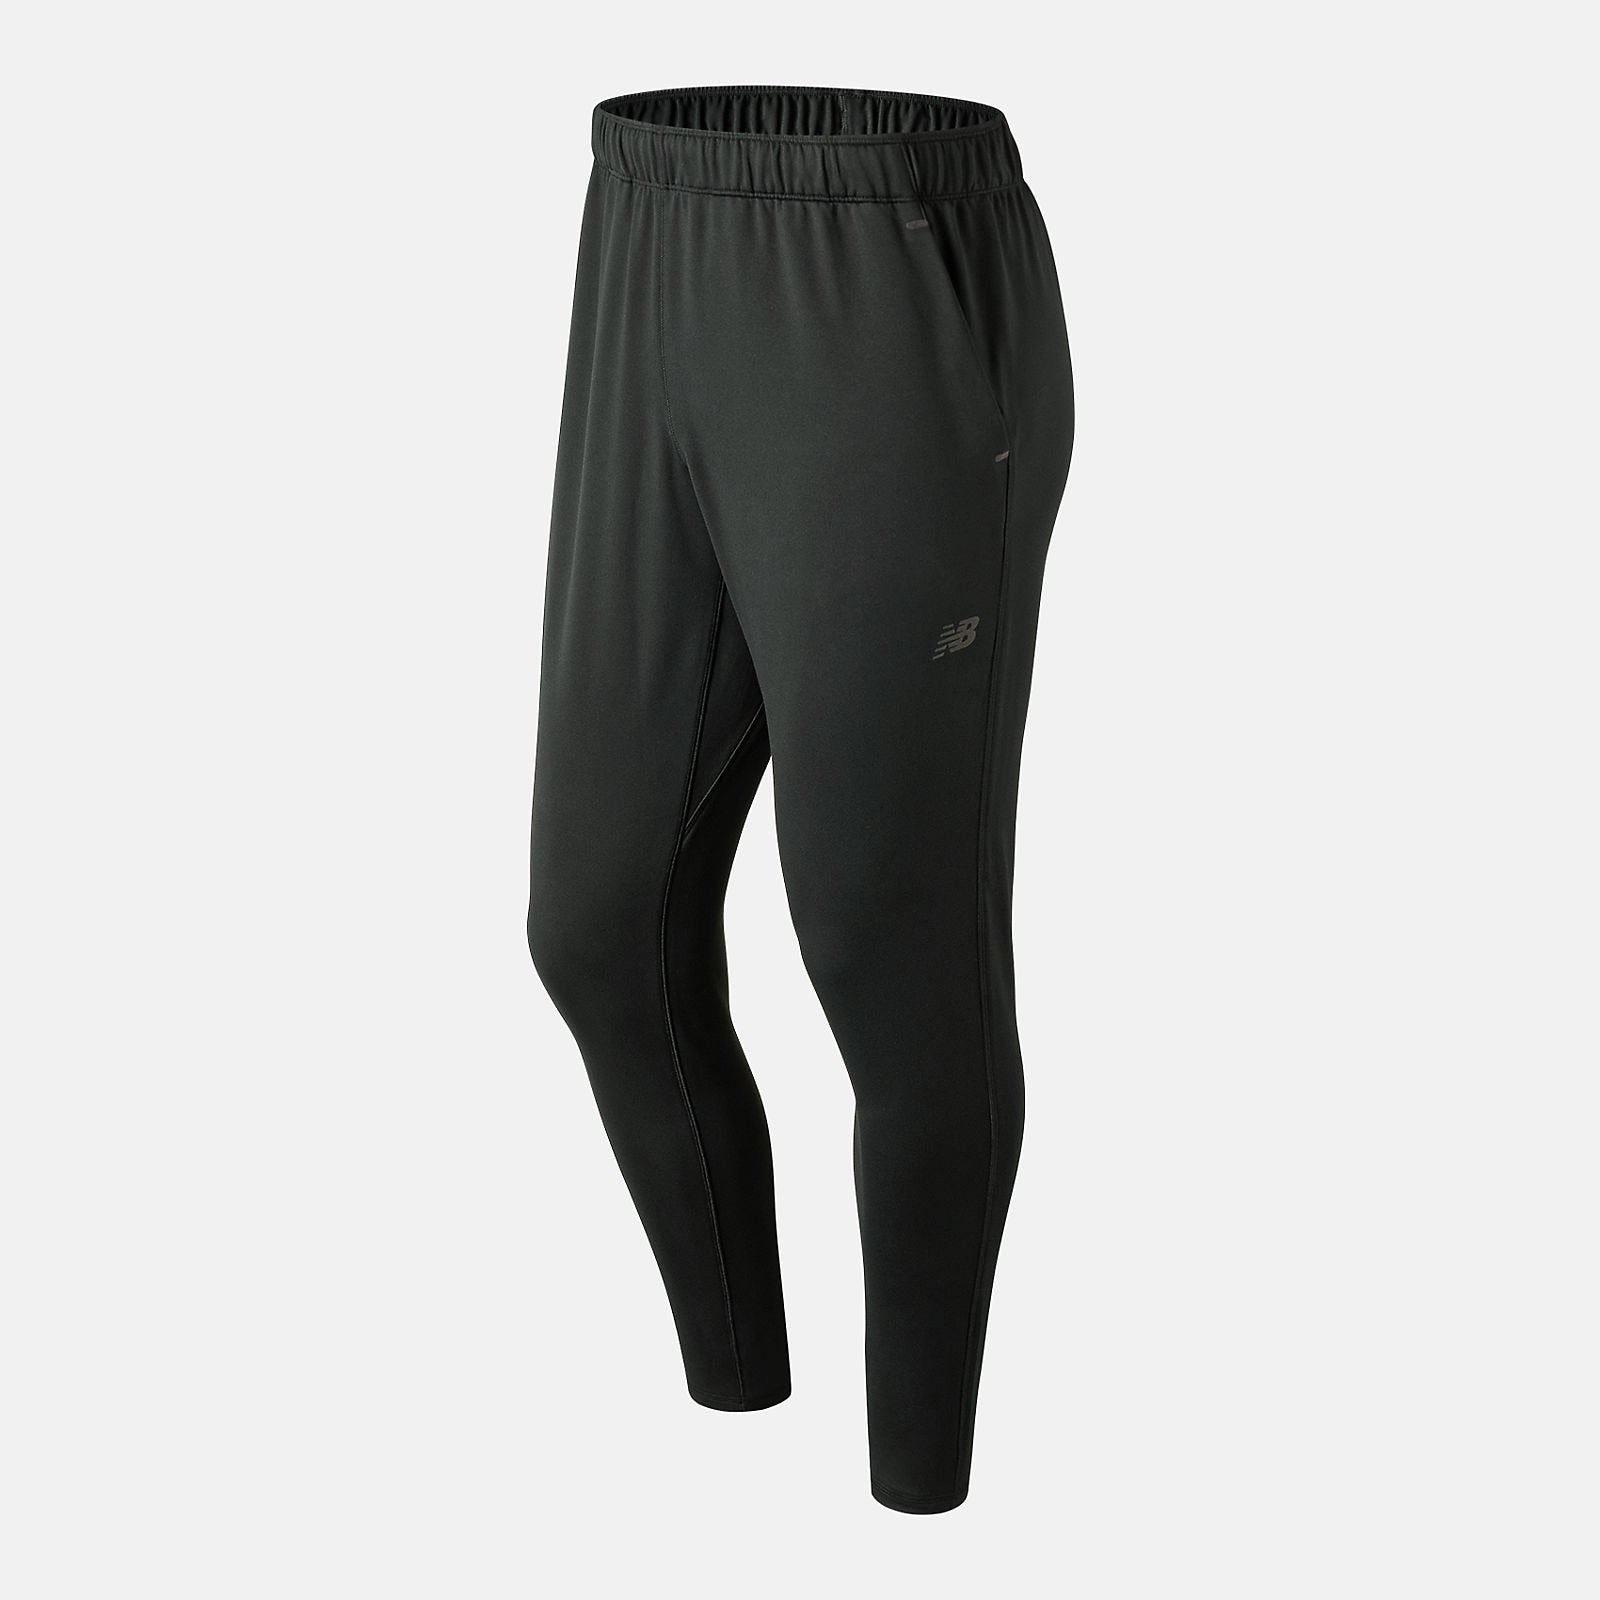 New Balance Men's Anticipate 2.0 Pant